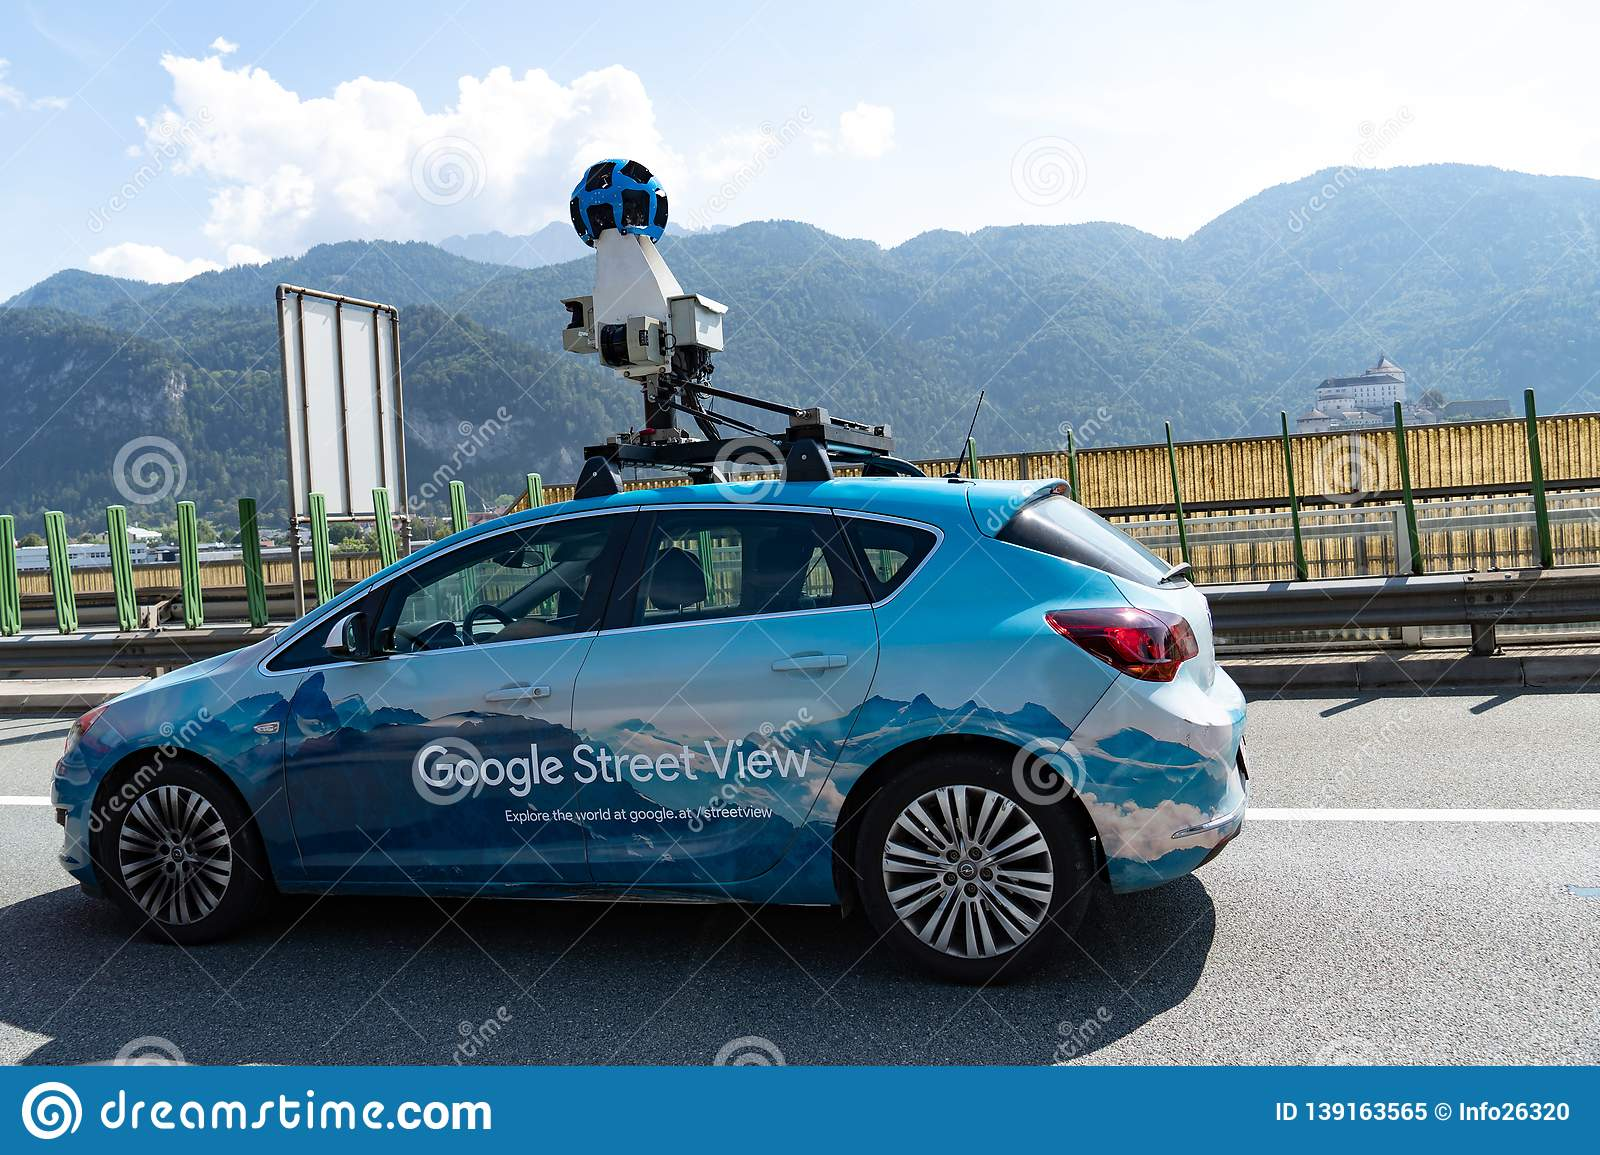 Google Street View Car editorial image. Image of google ... on google street view privacy concerns, aspen movie map, google 3d street view, google street view in oceania, google search, use google street view, competition of google street view, google street view car, google earth street view 2014, funny google street view, google art project, get google street view, google street view in africa, google earth live satellite feed, google maps street view australia, google maps street view uk, web mapping, google street view in the united states, location view, google street view in europe, google world street view, google street view in asia, google street view in latin america, bing earth street view, google earth maps aerial view, google earth street view usa, google earth street view home, google maps mobile street view, google search maps street view, google street maps street view,